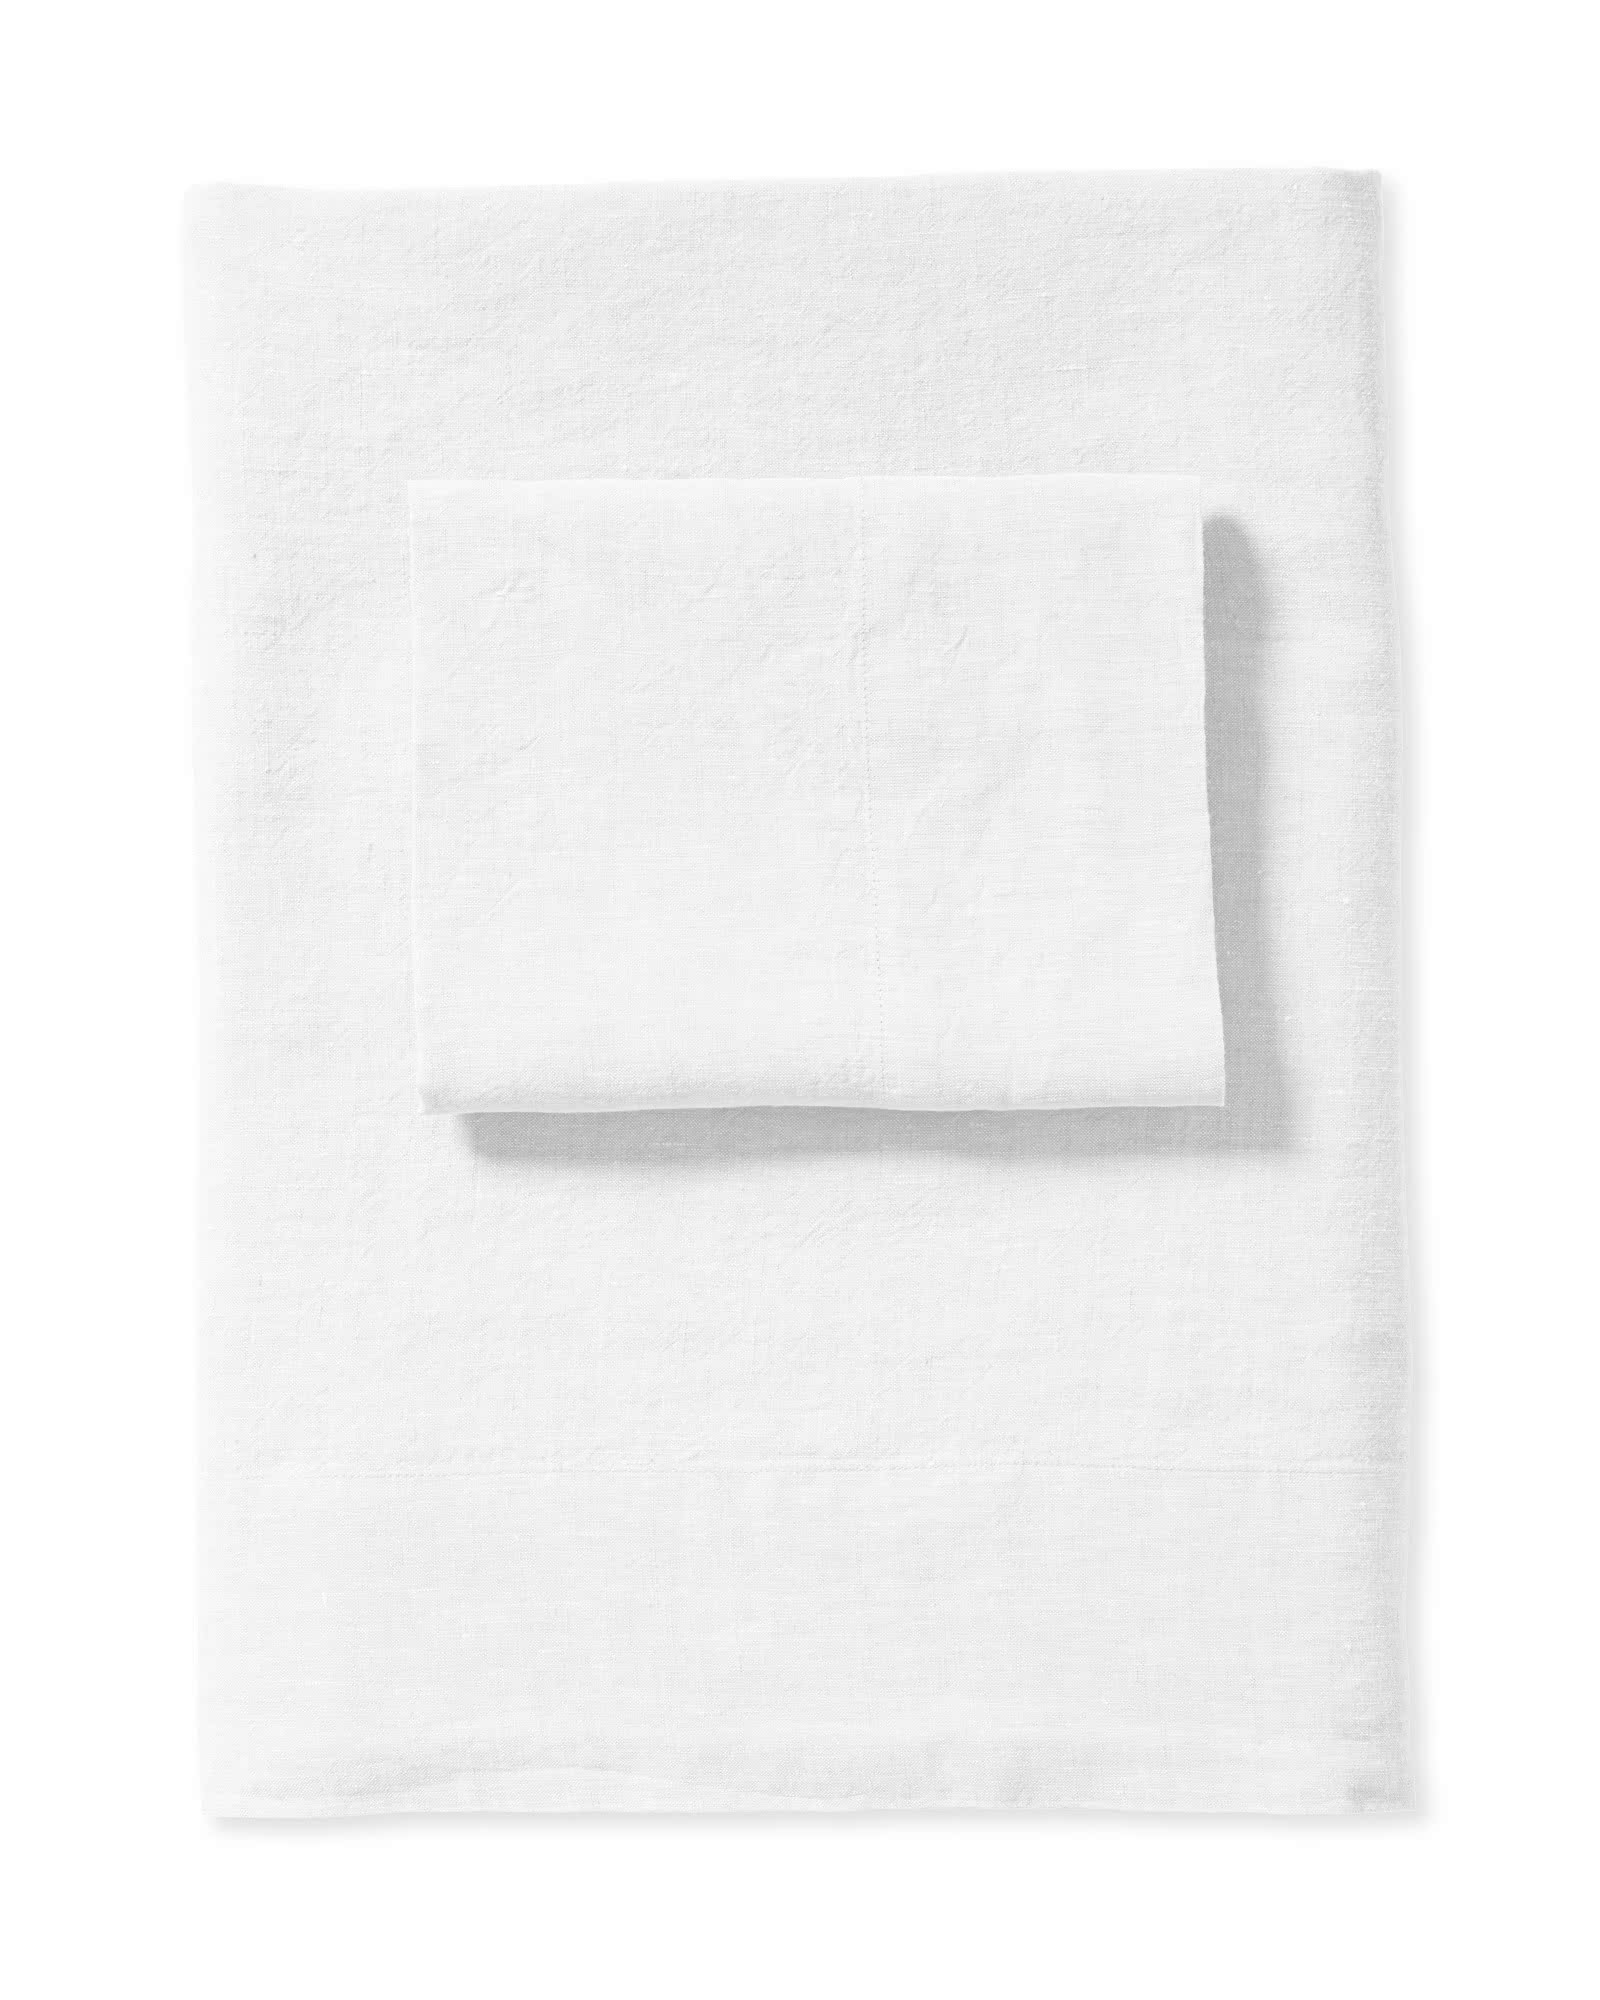 Cavallo Linen Sheet Set, White